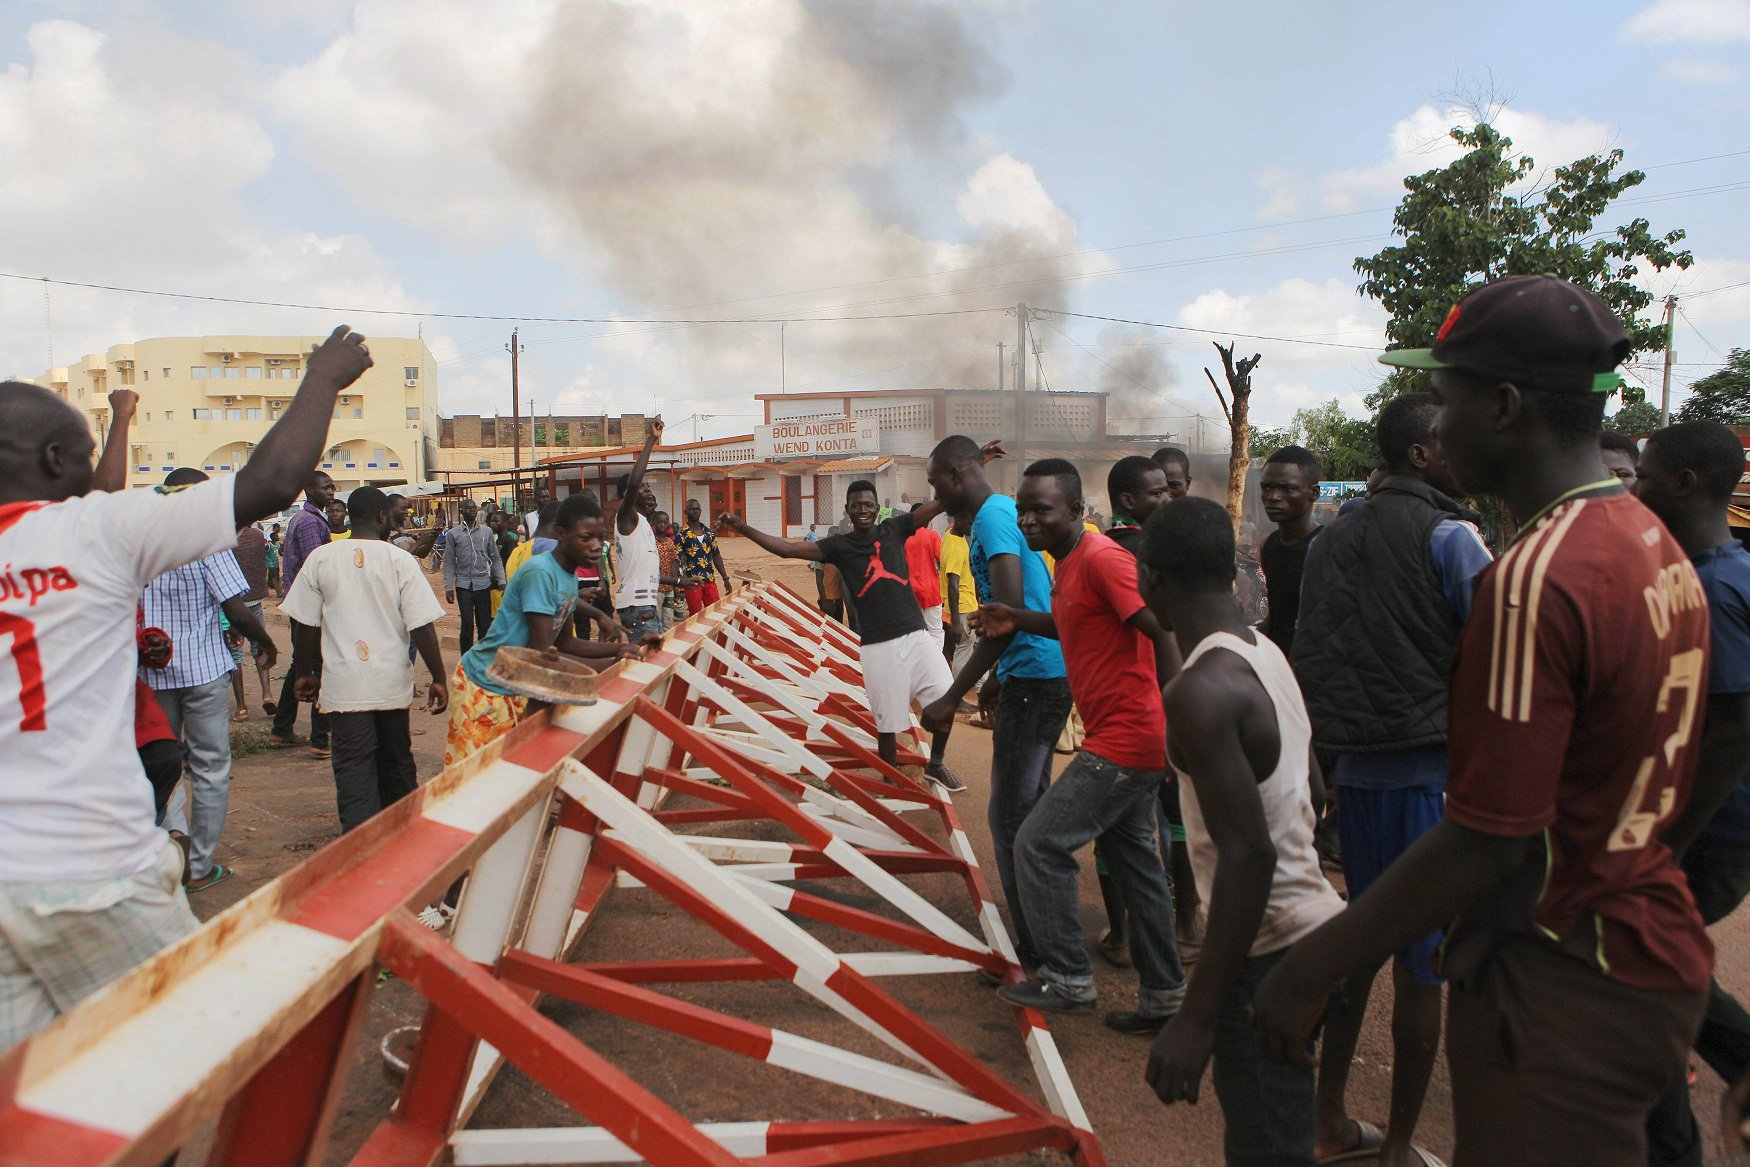 Anti-coup-protesters-erect-a-barricade-in-Ouagadougou-Burkina-Faso-September-19-2015.-Photo-REUTERS-Joe-Penney.jpg